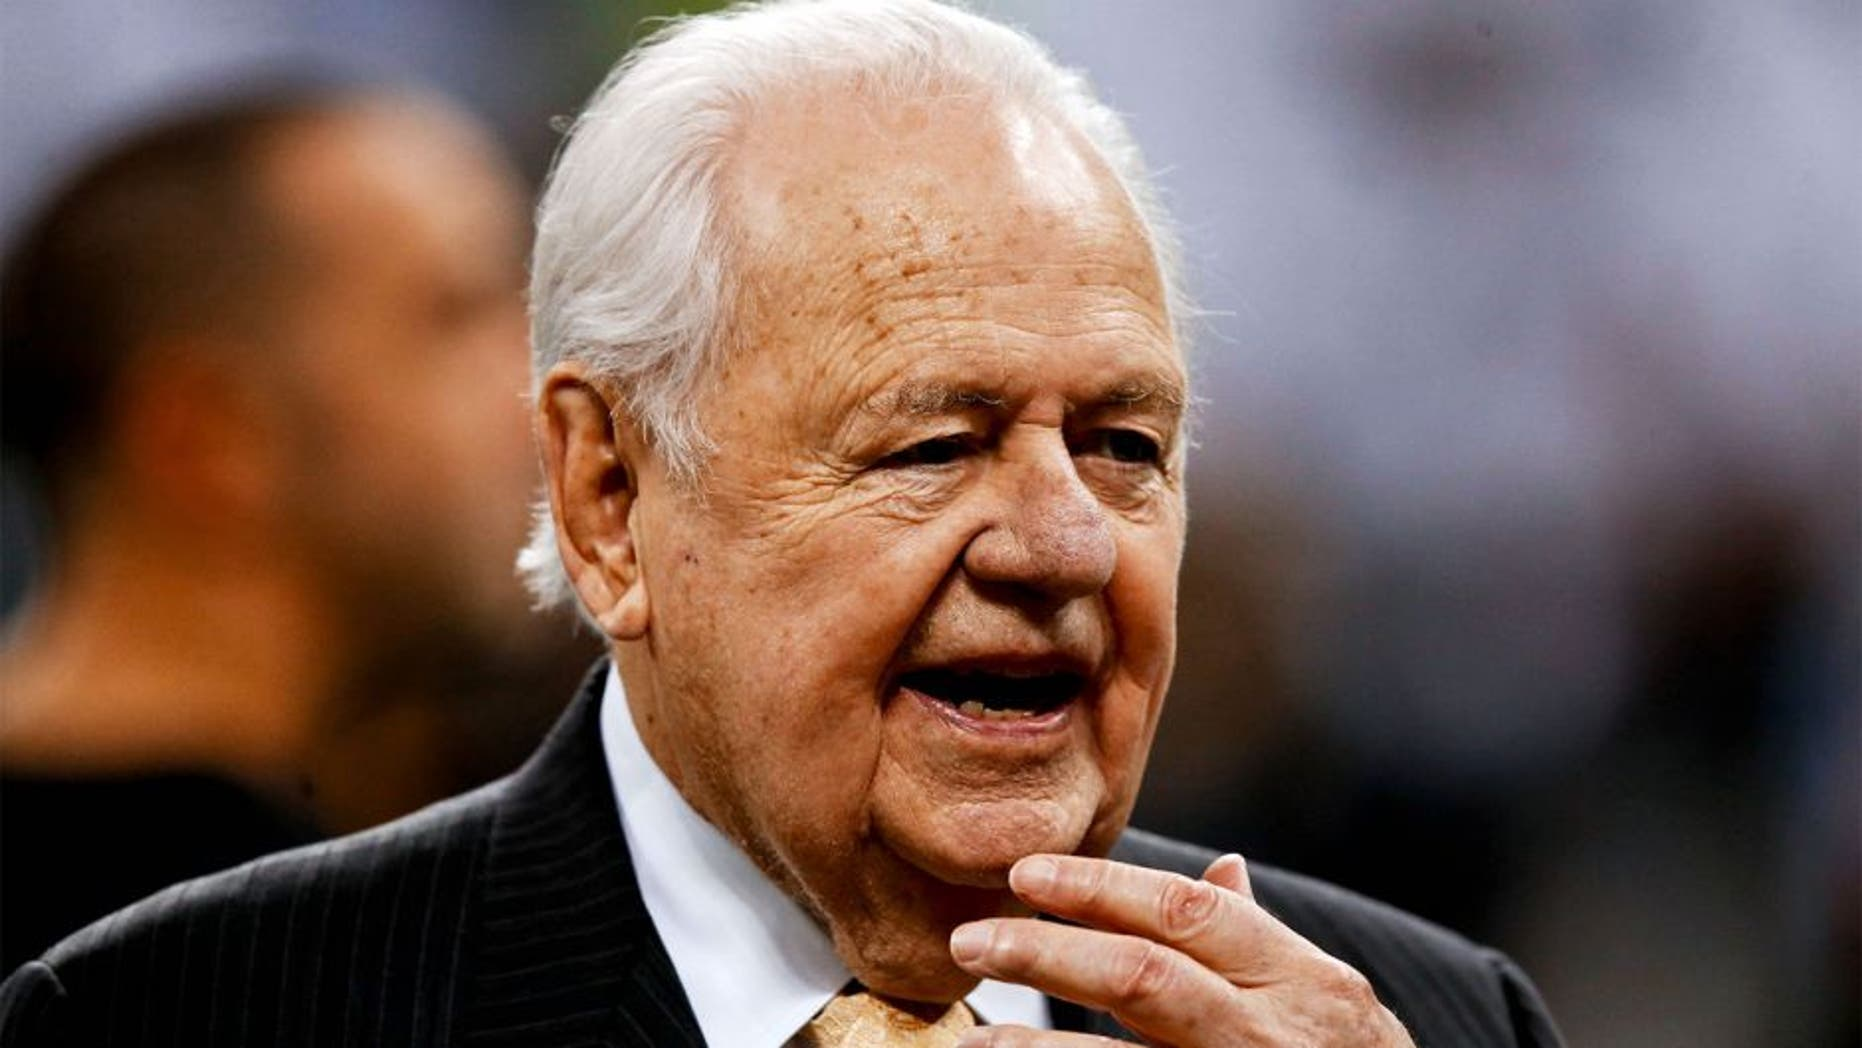 Dec 8, 2013; New Orleans, LA, USA; New Orleans Saints owner Tom Benson prior to a game against the Carolina Panthers at Mercedes-Benz Superdome. Mandatory Credit: Derick E. Hingle-USA TODAY Sports